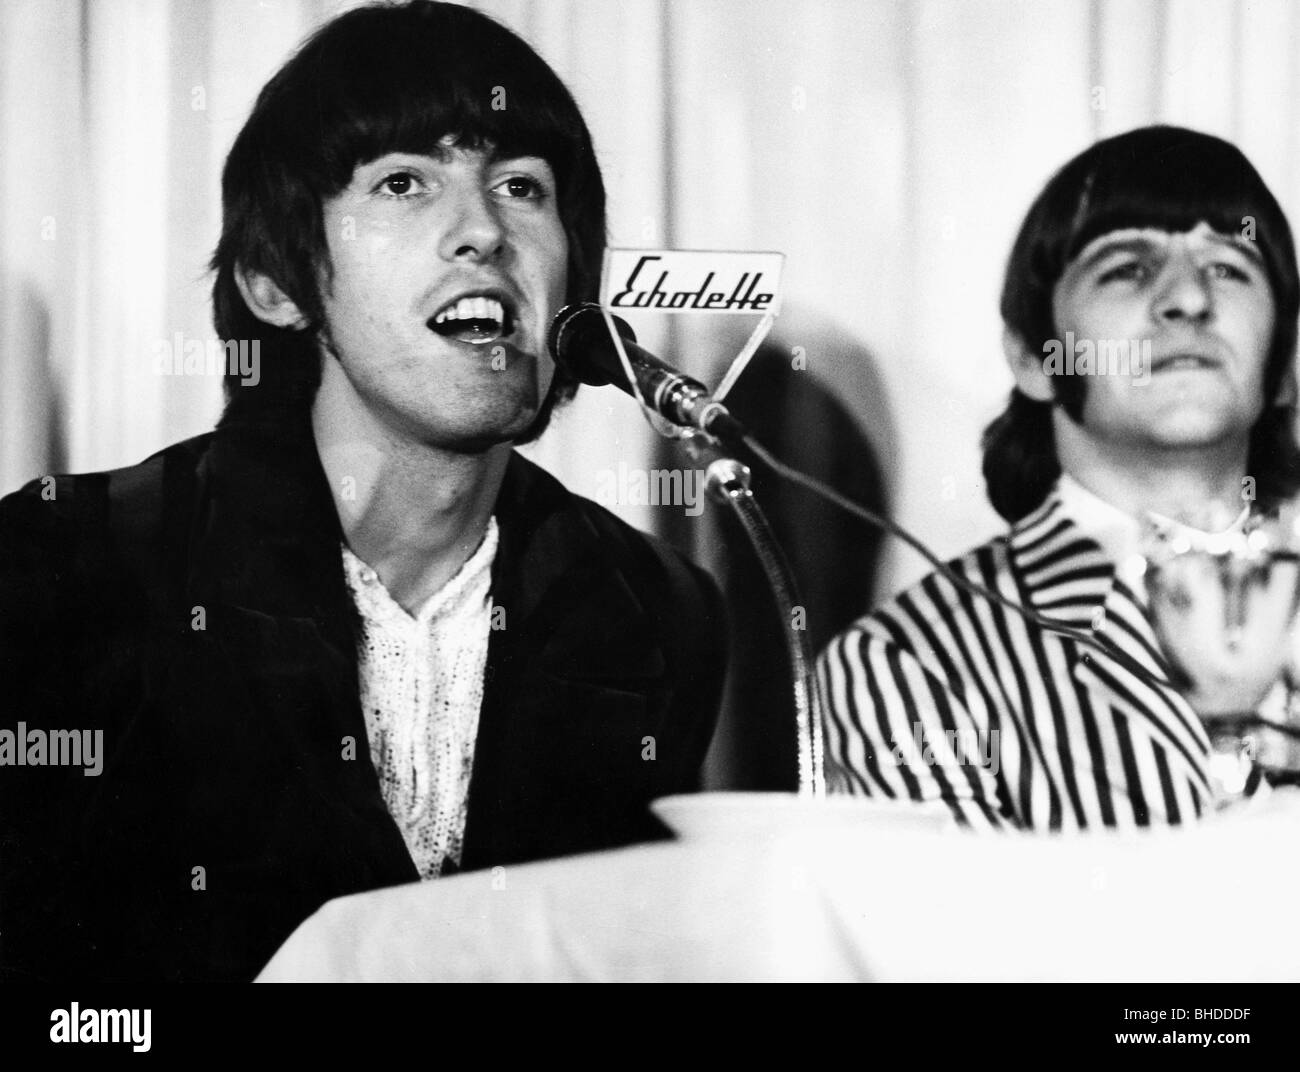 Harrison, George, 25.2.1943 - 29.11.2001, British musician and singer, with Ringo Starr, press conference, Beatles - Stock Image